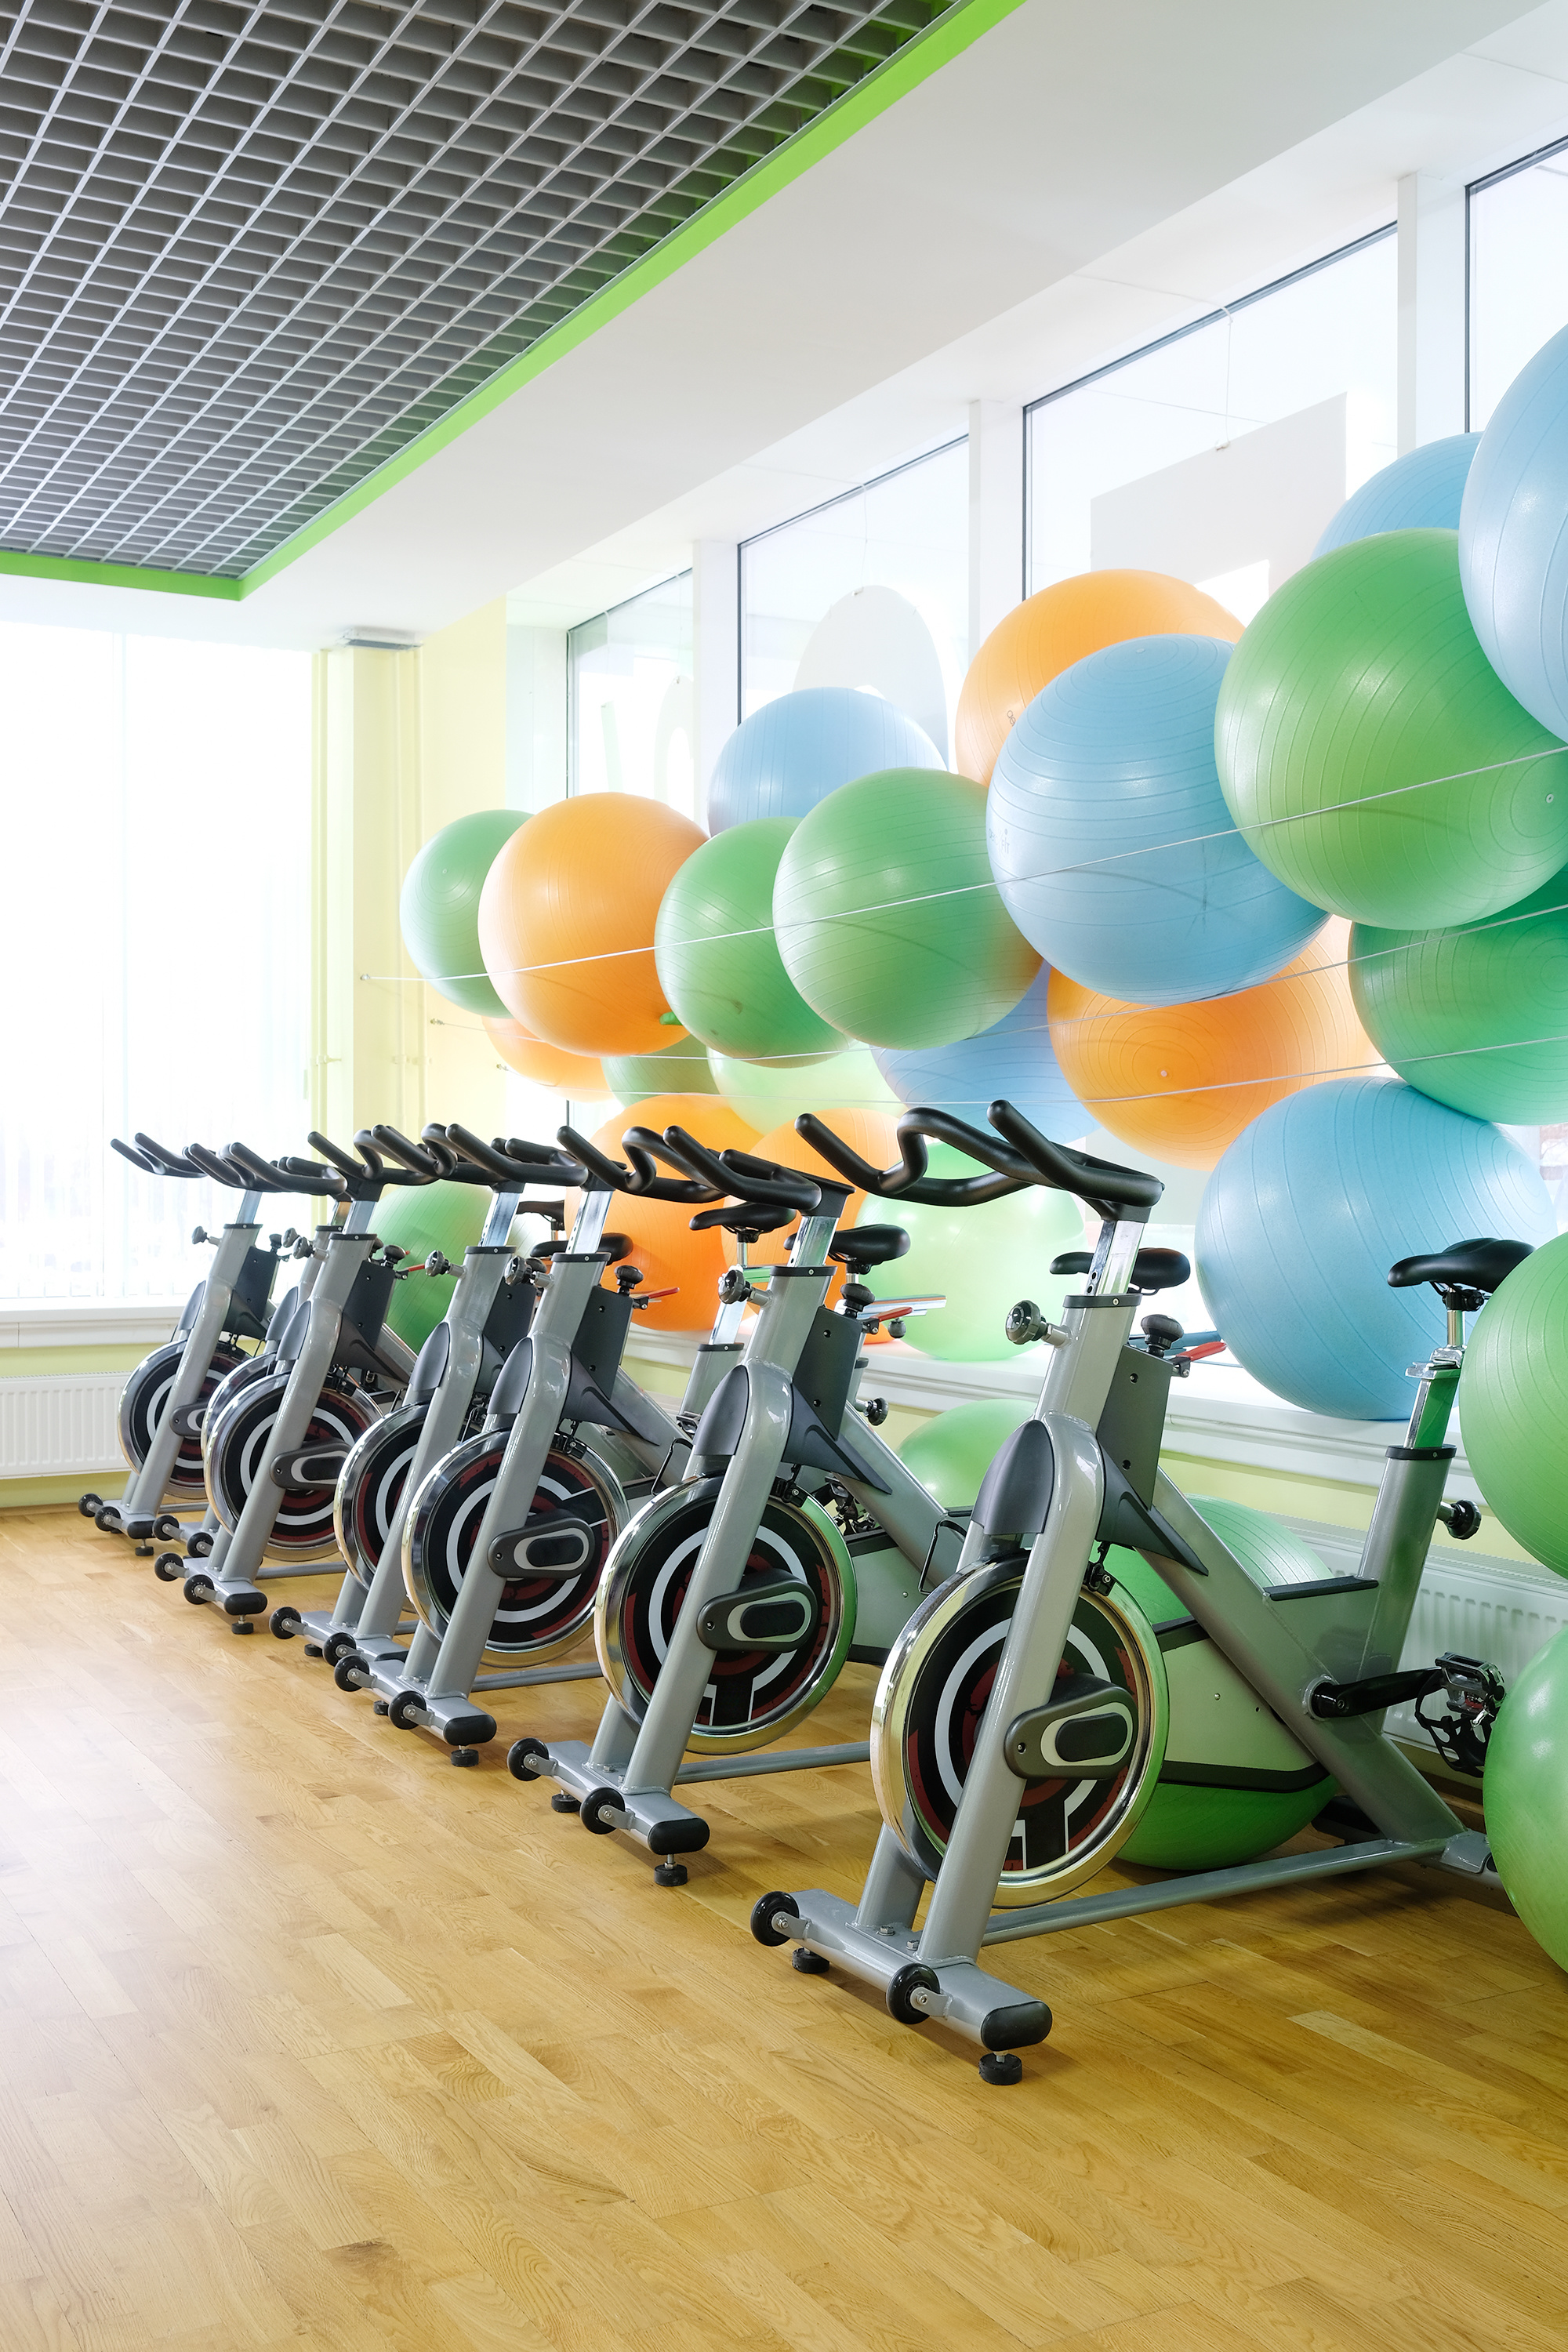 The gym is neatly placed on the spinning bike 56117